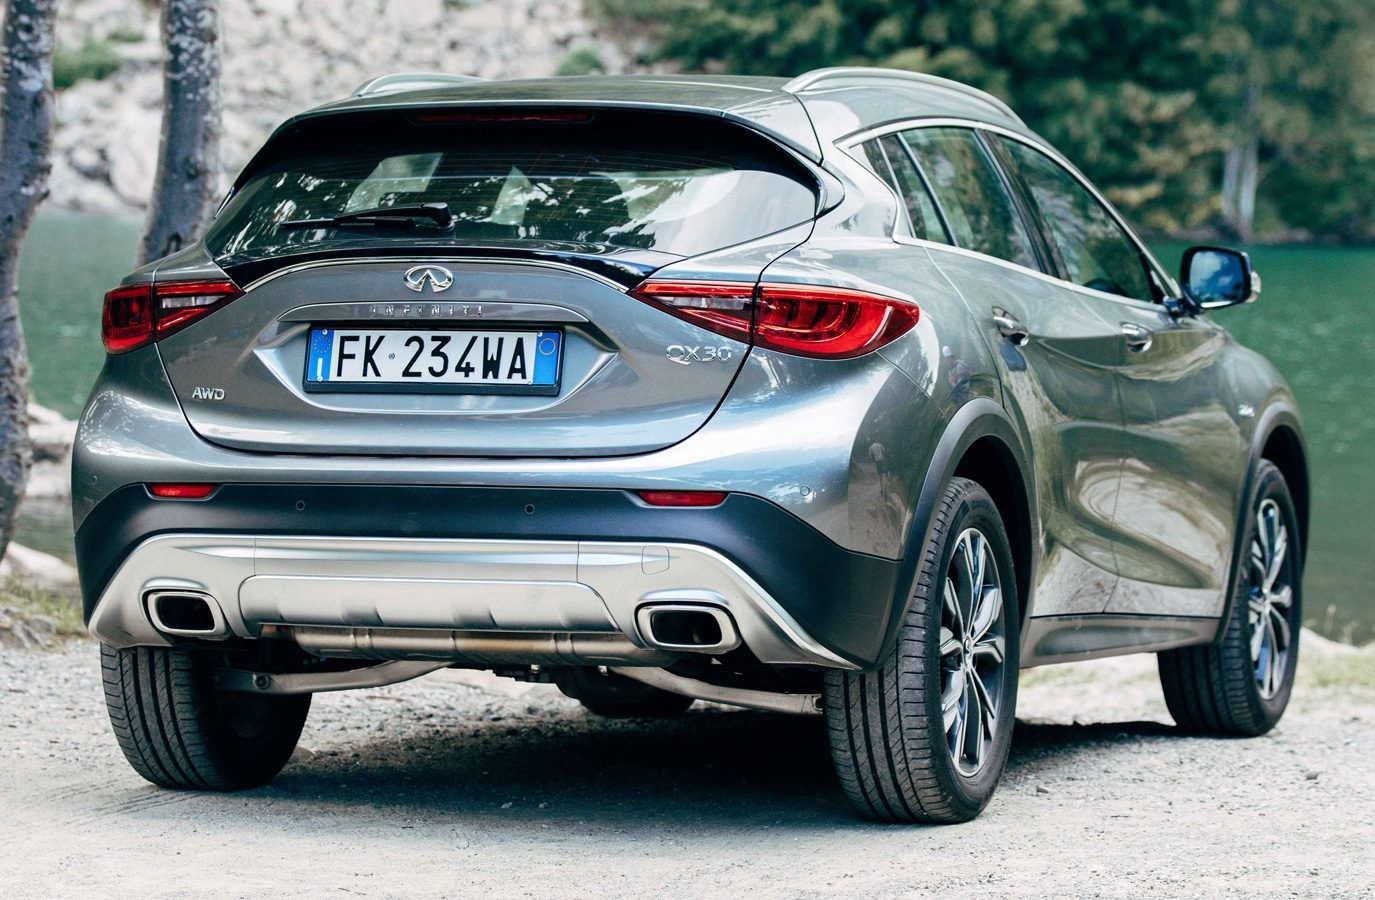 QX30 The Drive to Become Adventurous